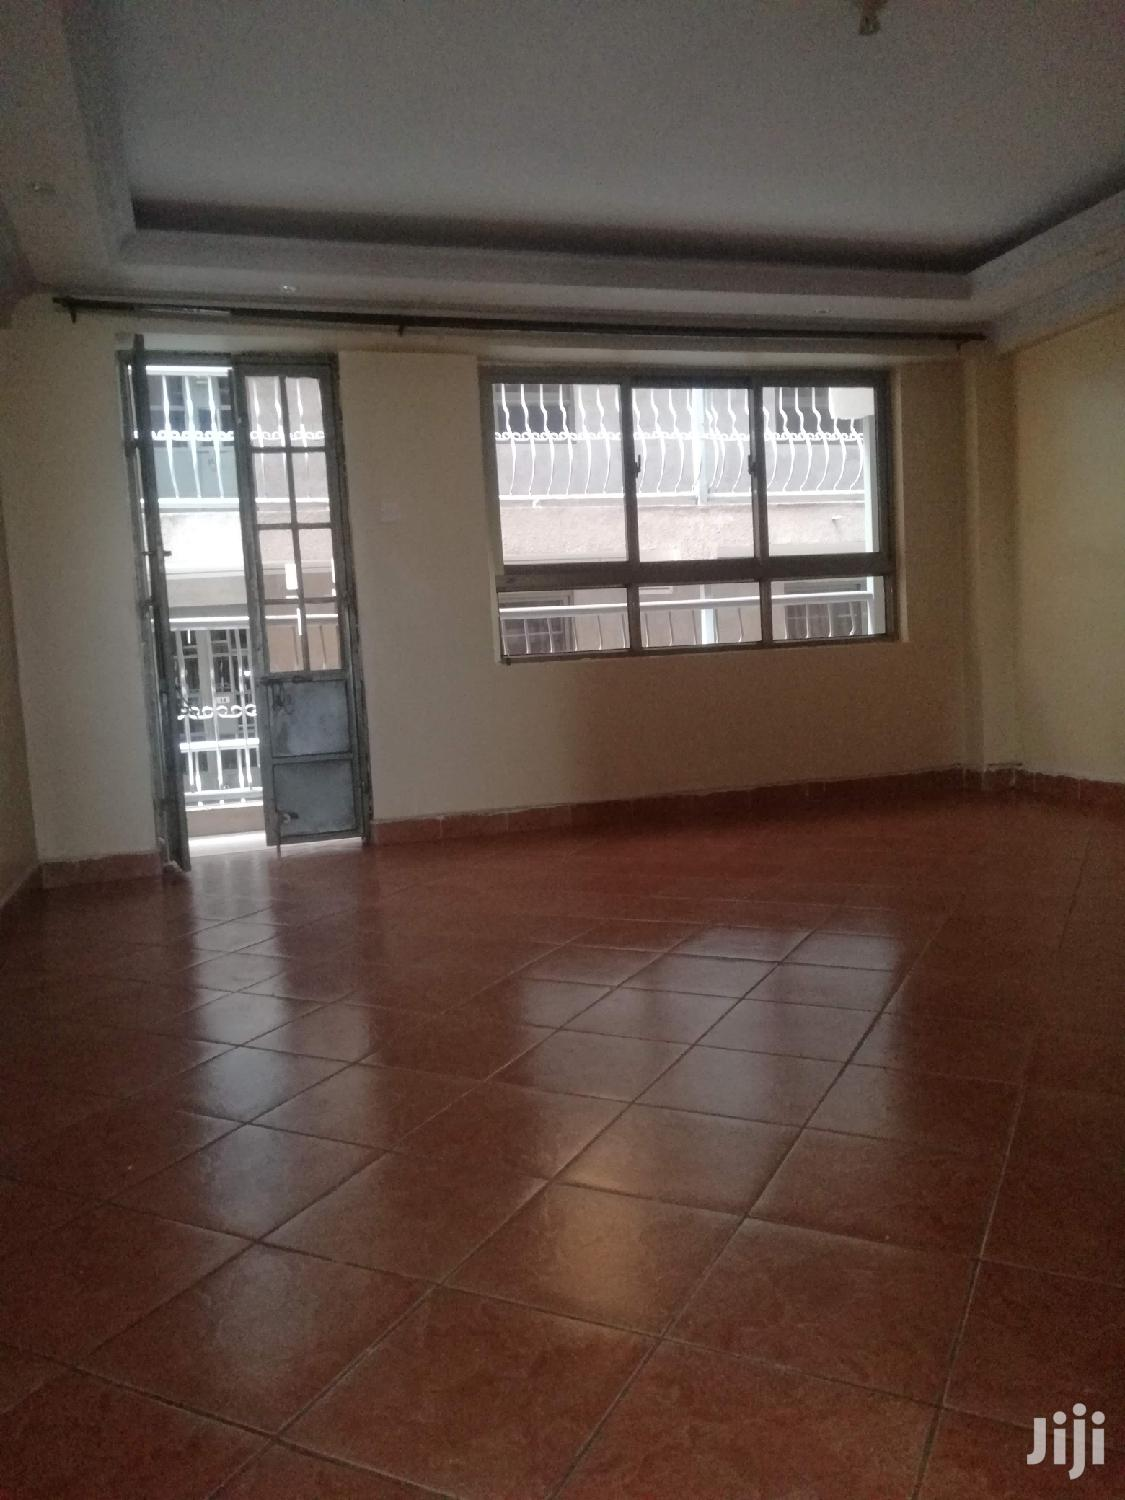 Elegant;2brs Apartment All En-suite And Very Secure   Houses & Apartments For Rent for sale in Lavington, Nairobi, Kenya